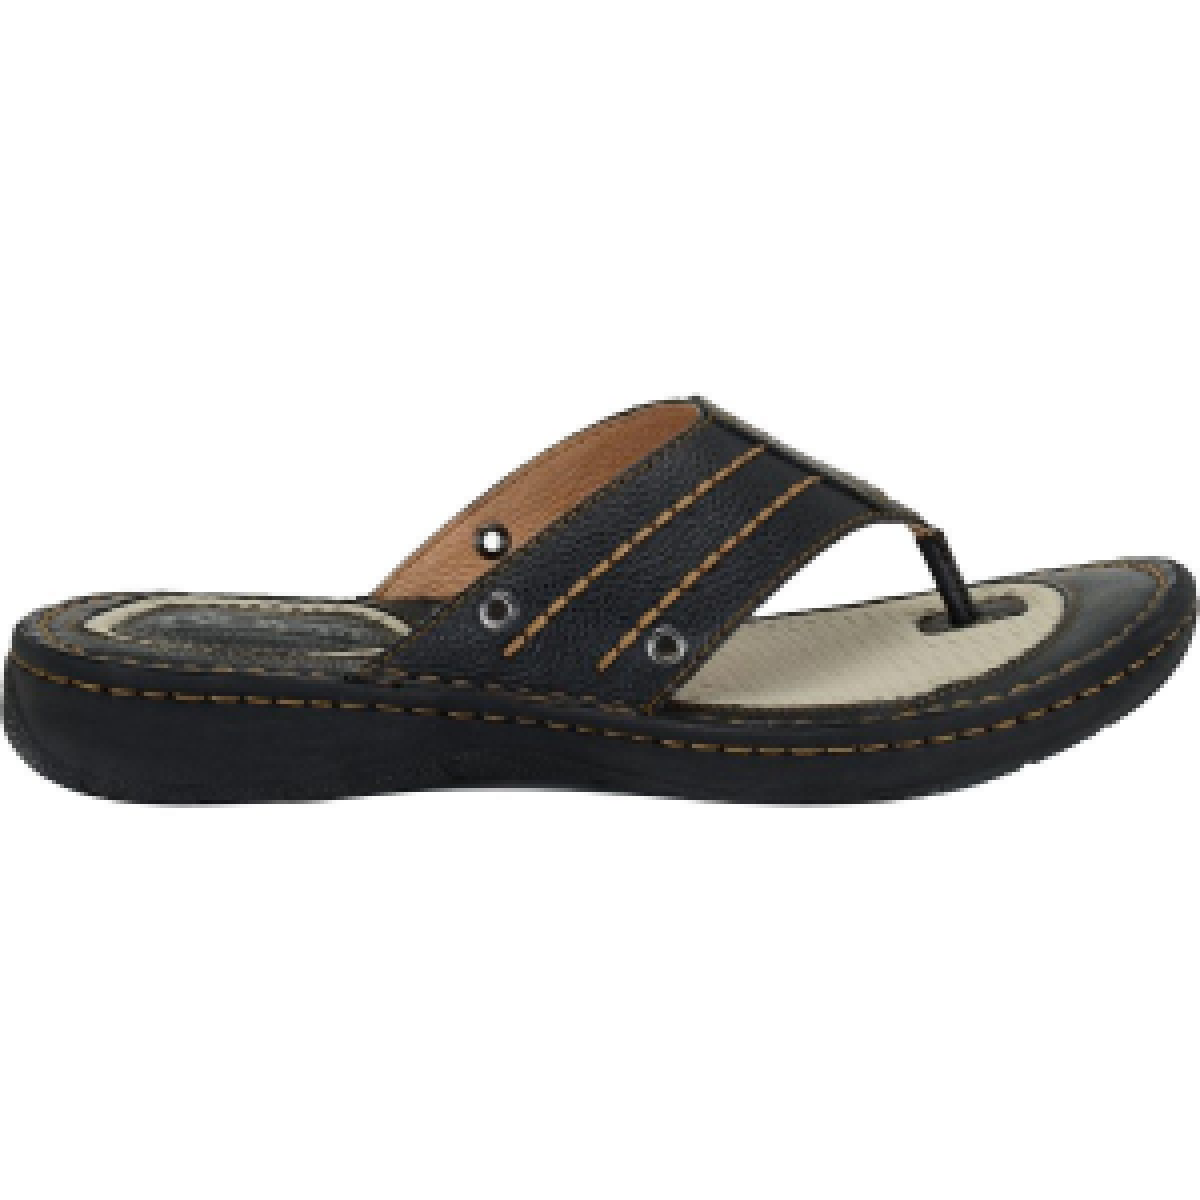 beaa4cf4ce38  58.47Availability  In stock. The Born Shoes Men s Jonah Flip Flops deliver  a laid-back look and feel ...